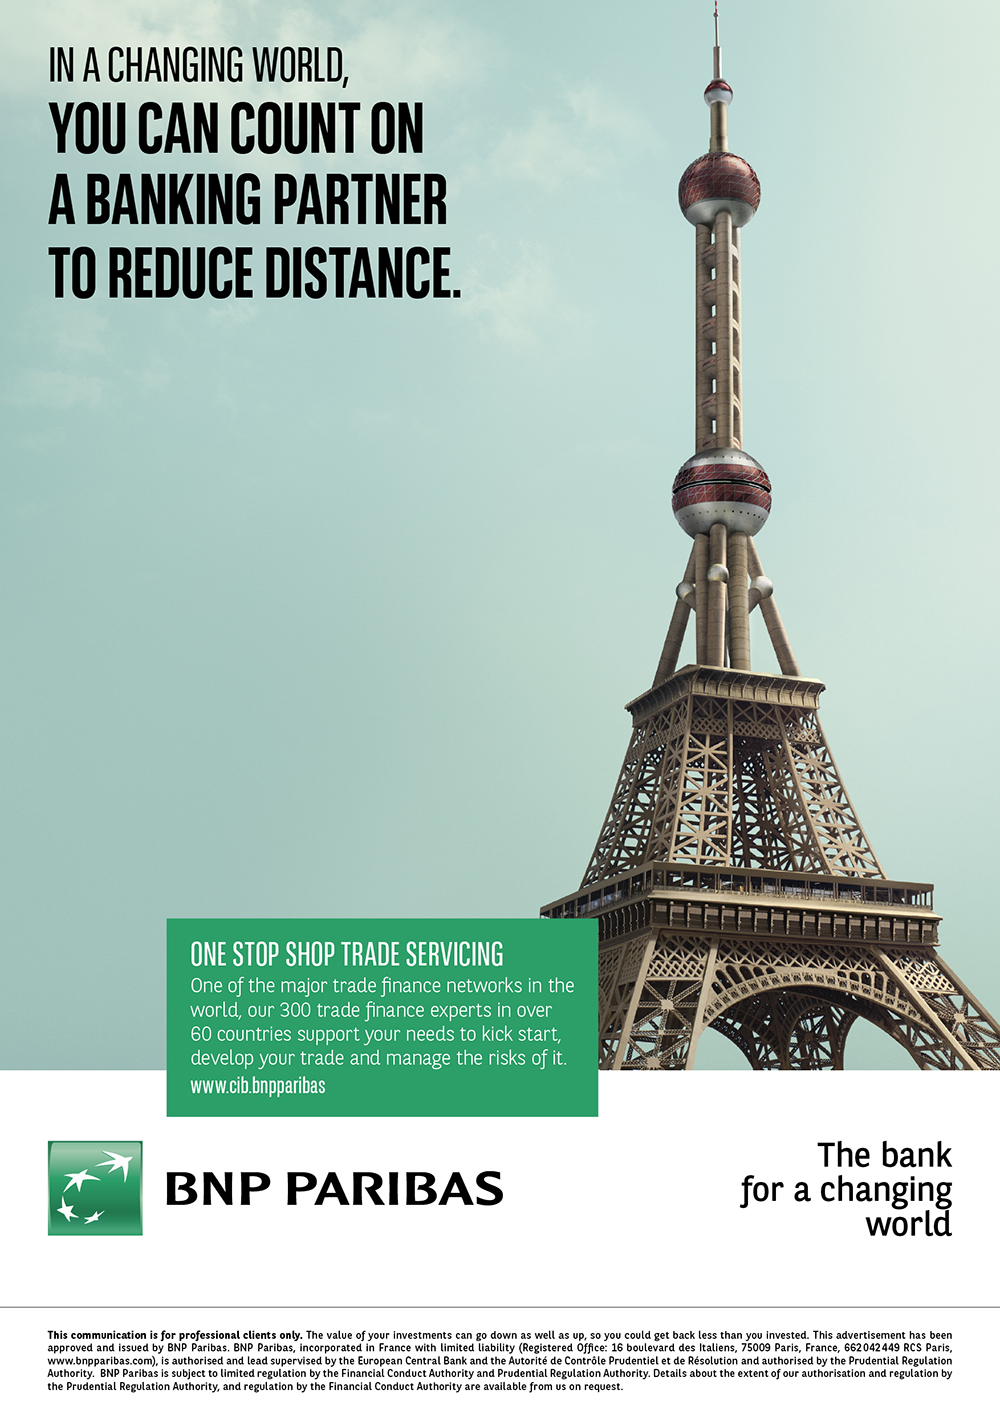 bnp-paribas-publicite-marketing-banque-in-a-changing-world-la-banque-un-monde-qui-change-2015-publicis-conseil-4